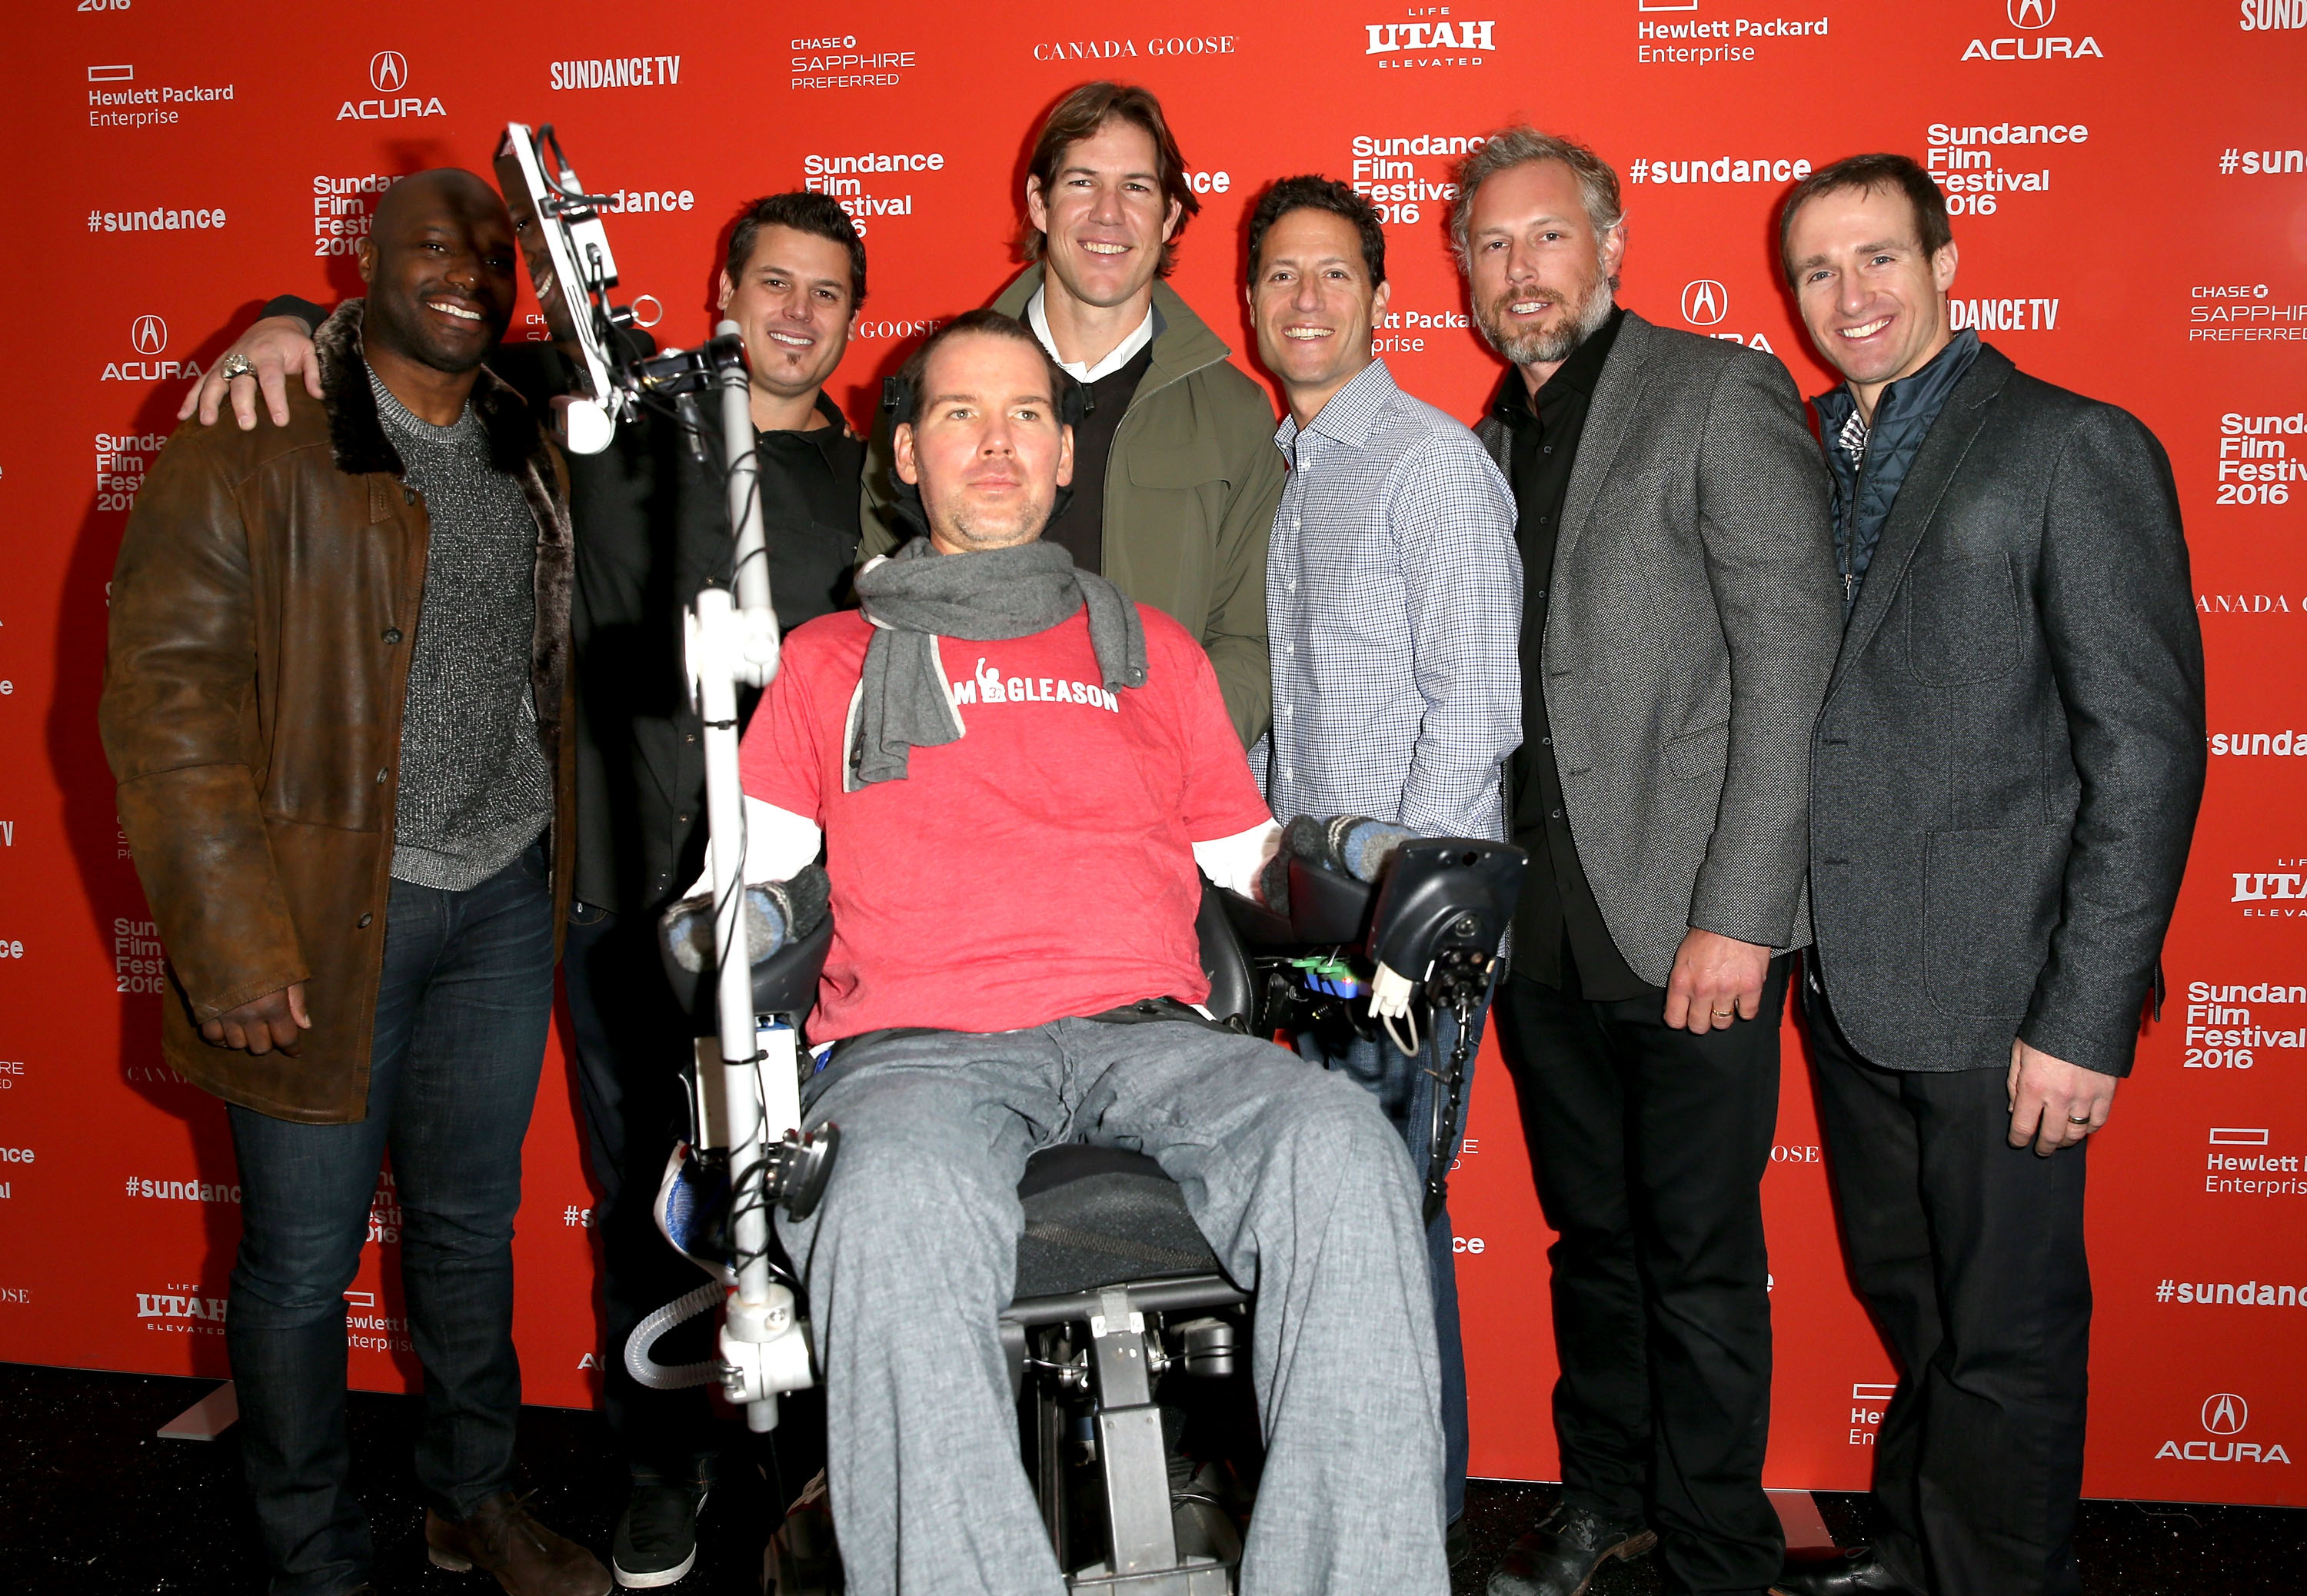 NFL player D'Qwell Jackson, former NFL player Lonie Paxton, film subject Steve Gleason, producer Scott Fujita, Chief Content Officer for IMG Mark Shapiro, former NFL player Eric Johnson, and NFL quarterback Drew Brees attend the  Gleason  Premiere during the 2016 Sundance Film Festival on January 23, 2016 in Park City, Utah.